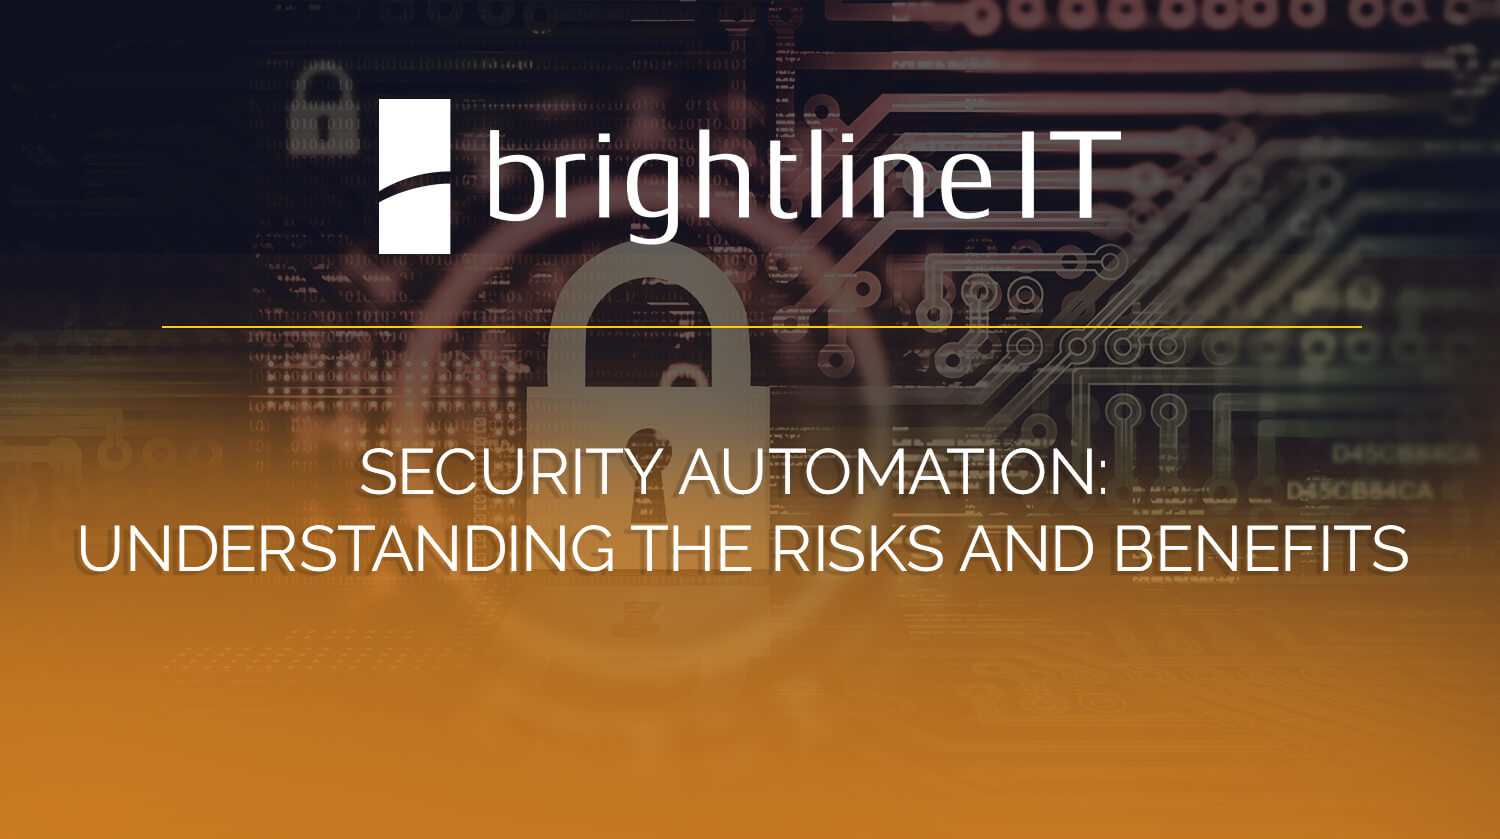 Security Automation: Understanding the Risks and Benefits